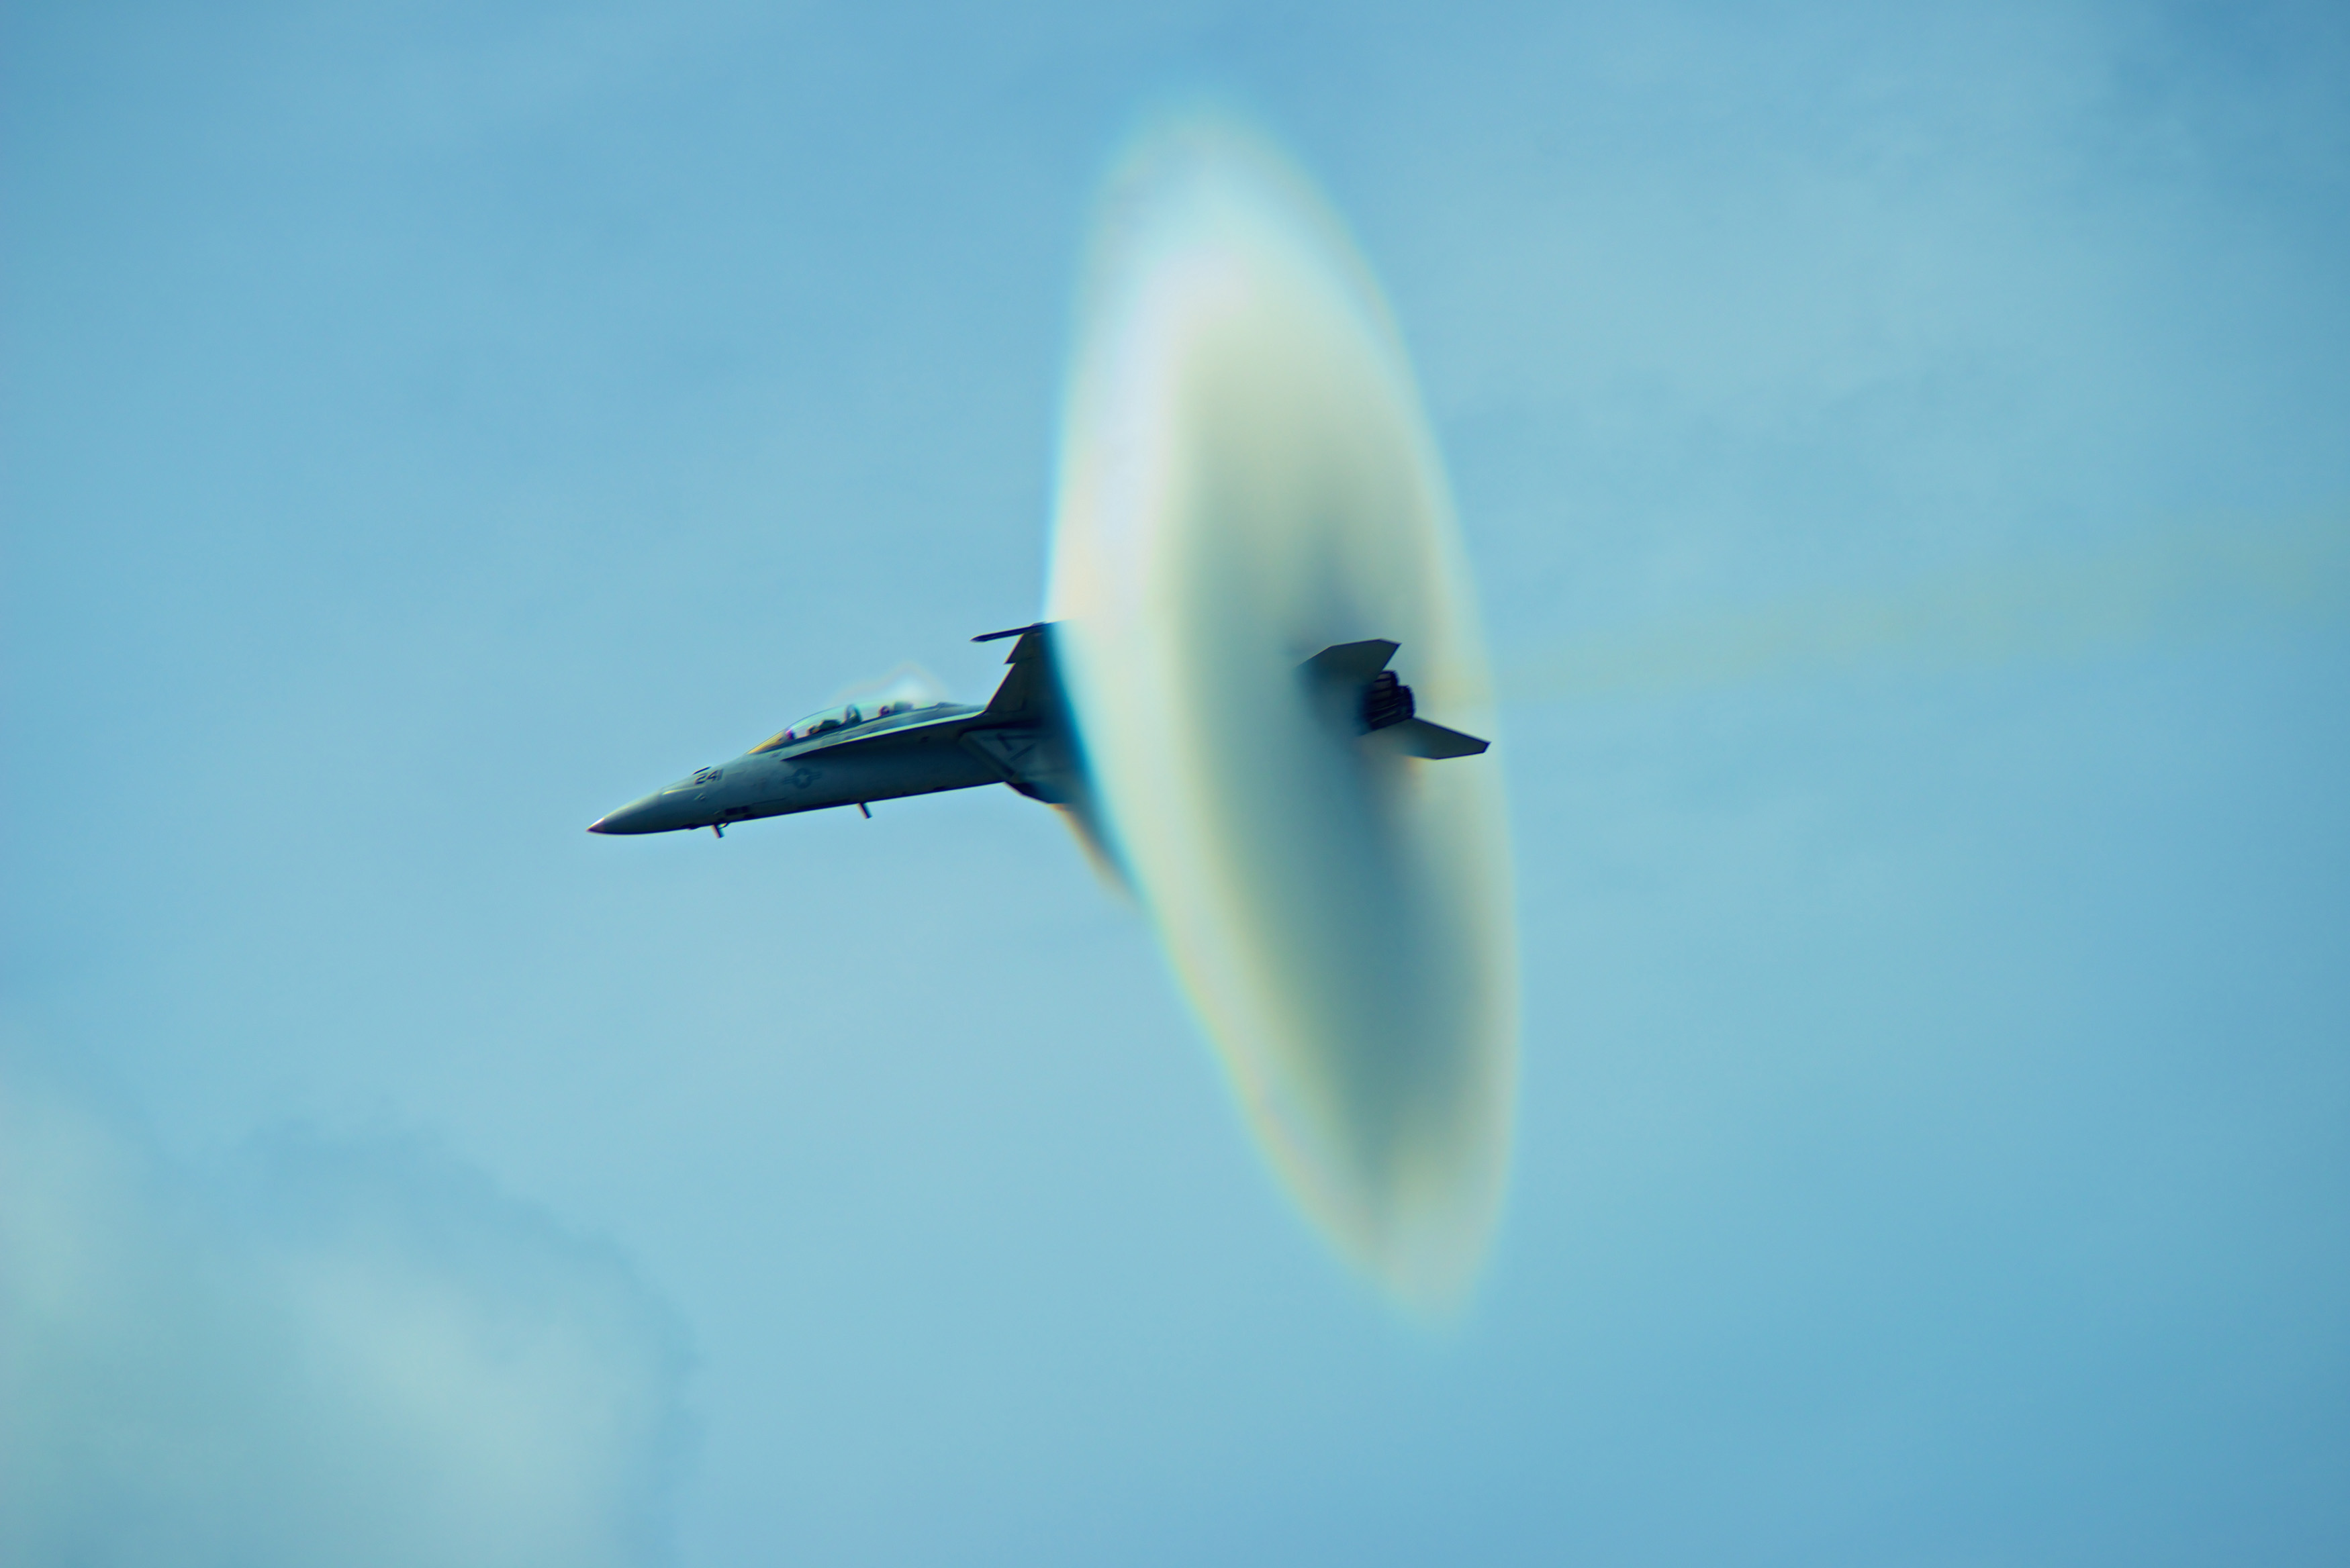 Snapper shoots stunning image capturing jet at speed of